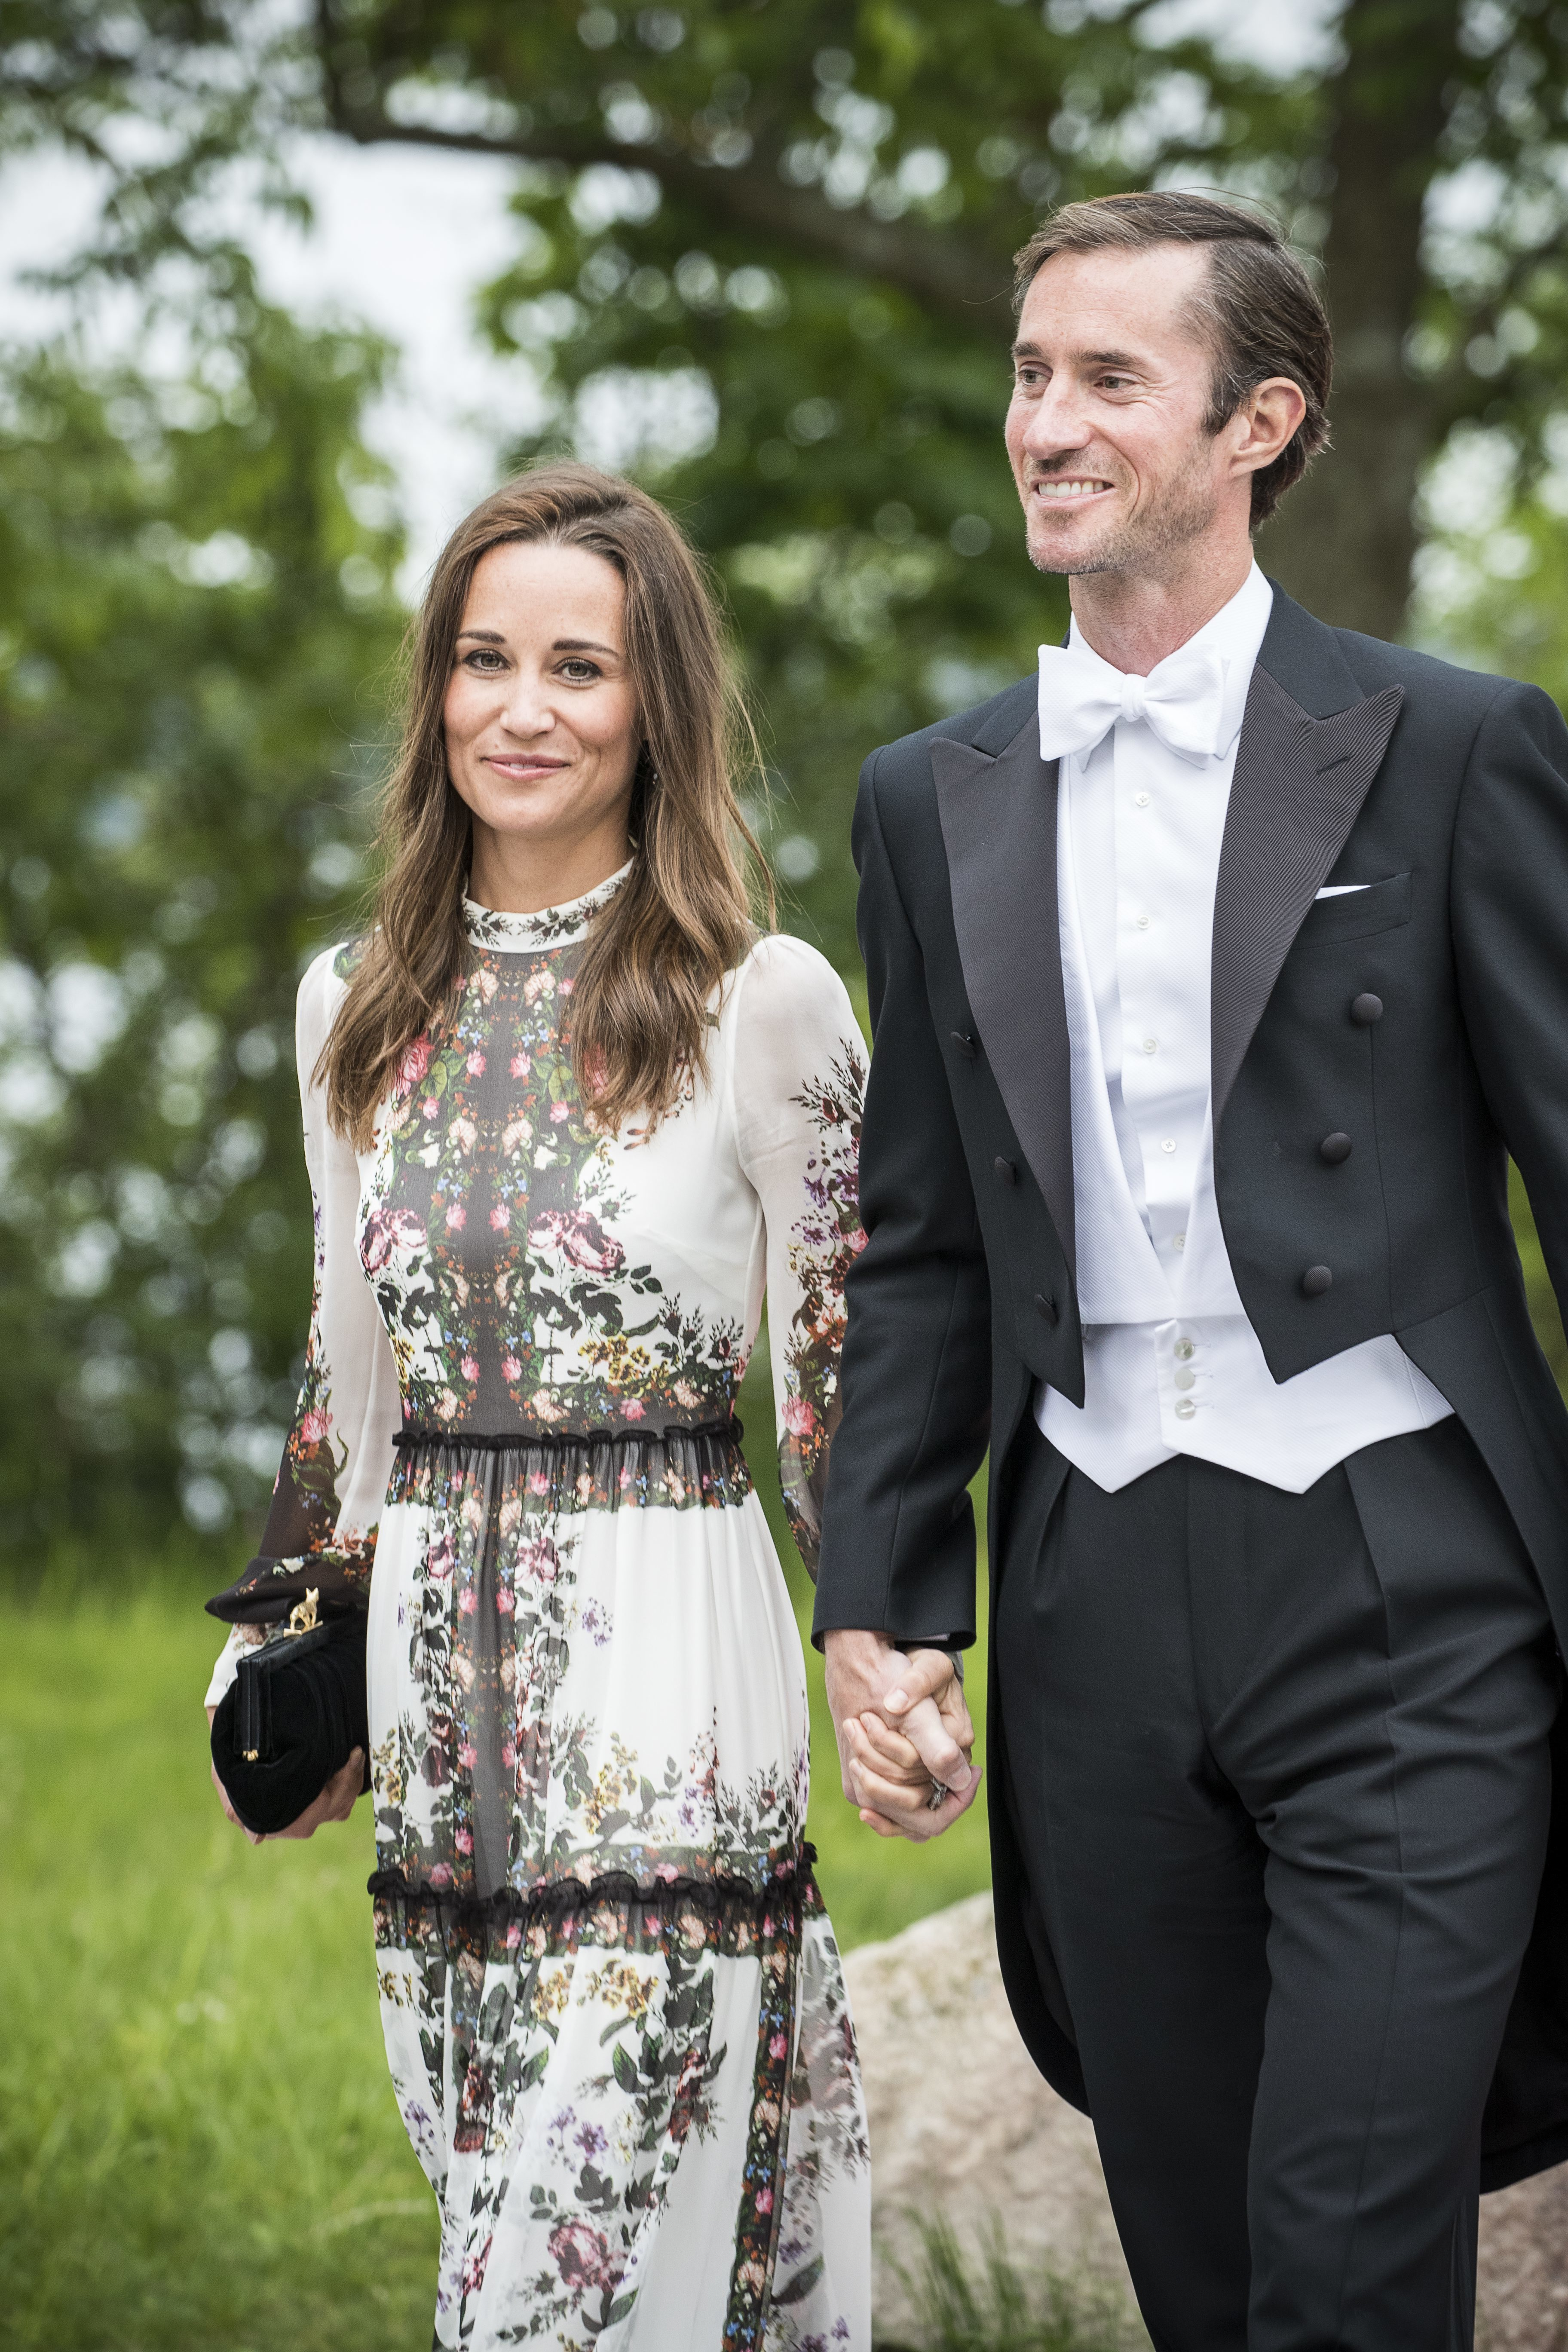 Pippa Middleton and James Matthews attend the wedding party for Jons Bartholdson and Anna Ridderstad in Stockholm, Sweden, on June 10, 2017.